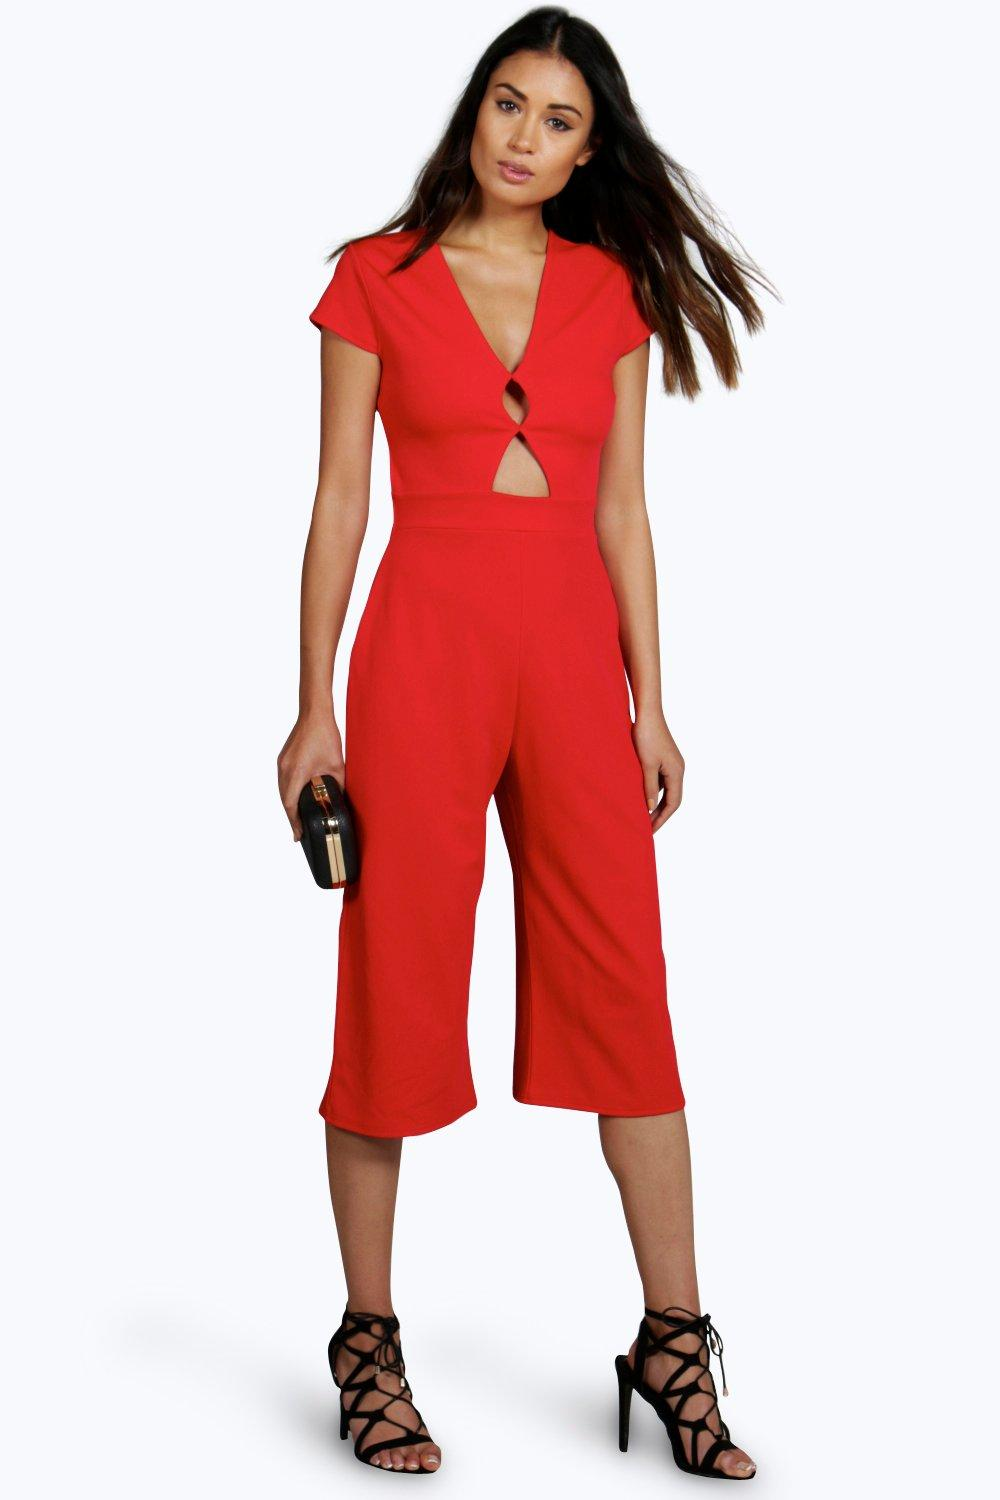 boohoo Lissa Cut Out Culotte One Piece - red $10.00 AT vintagedancer.com